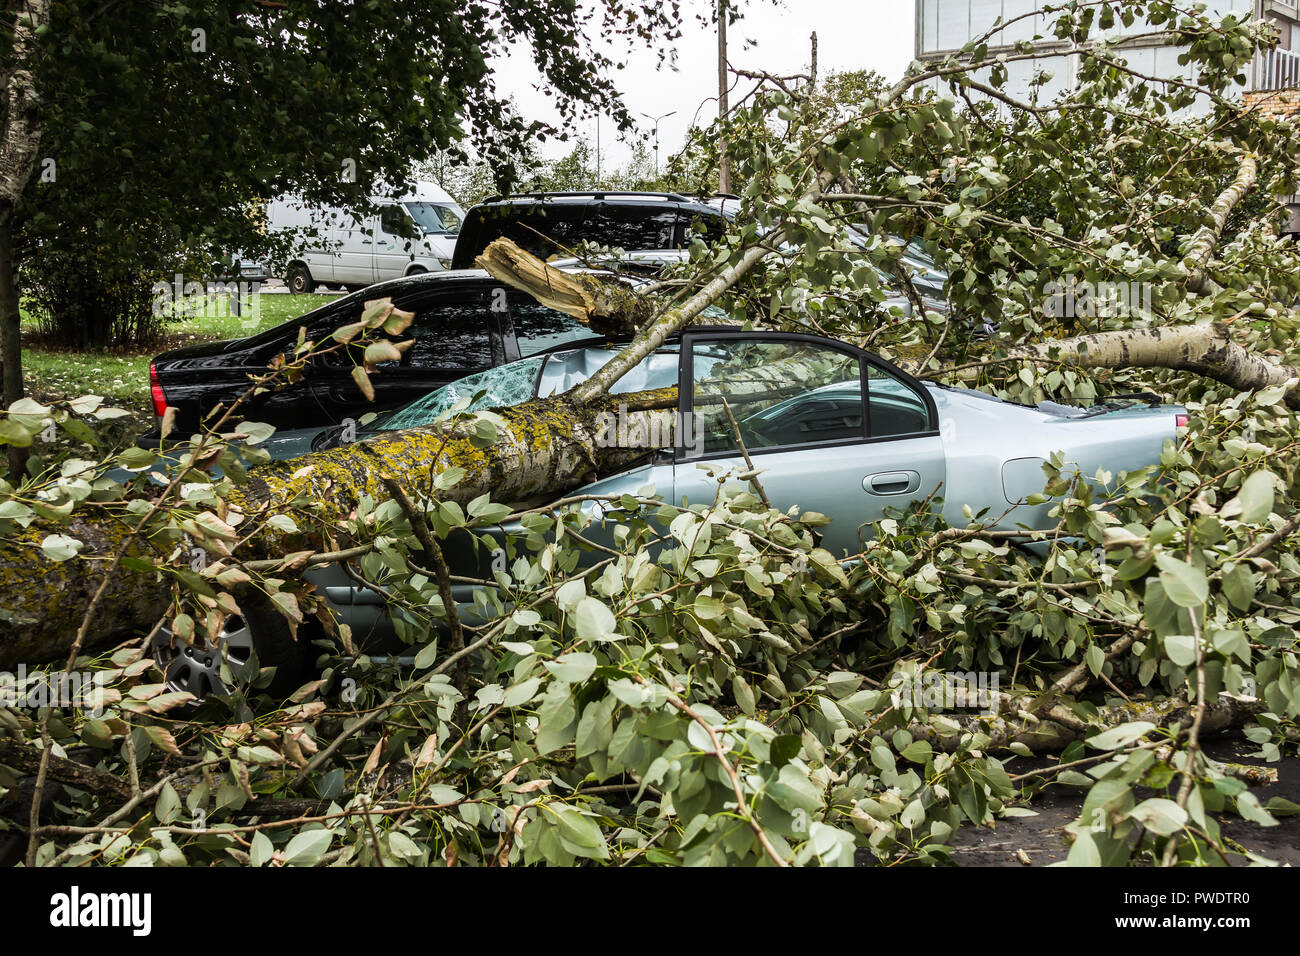 a strong september wind broke a tree that fell on a car parked nearby, disaster backgroiund - Stock Image